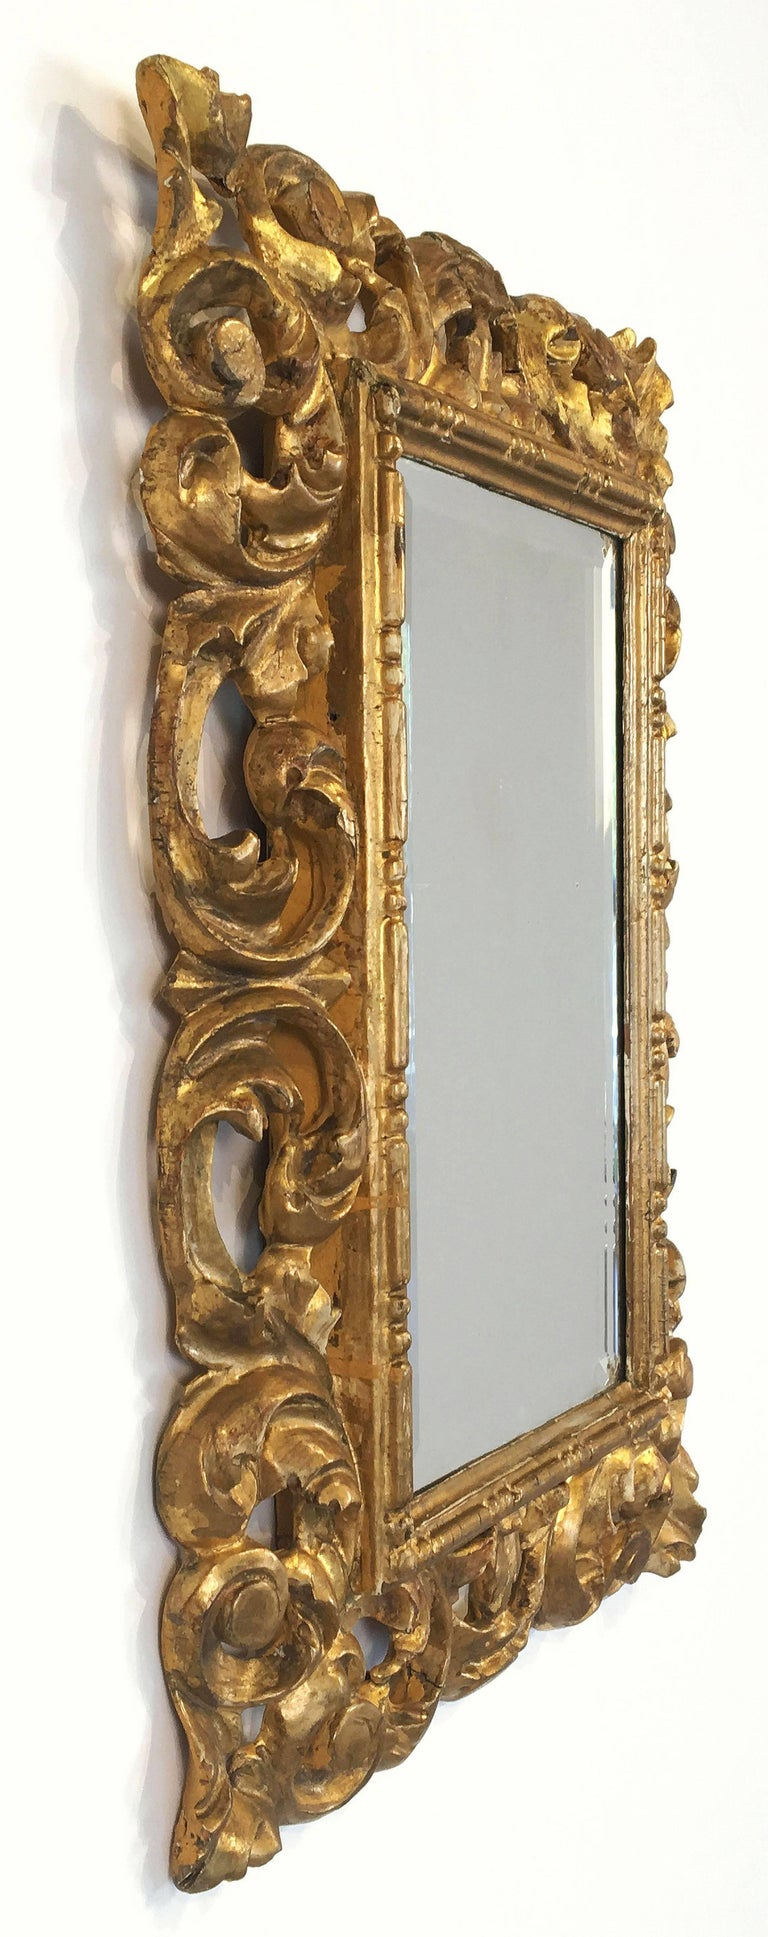 Rococo Beveled Mirror with Carved Giltwood Frame (H 22 1/2 x W 16 1/2) For Sale 5